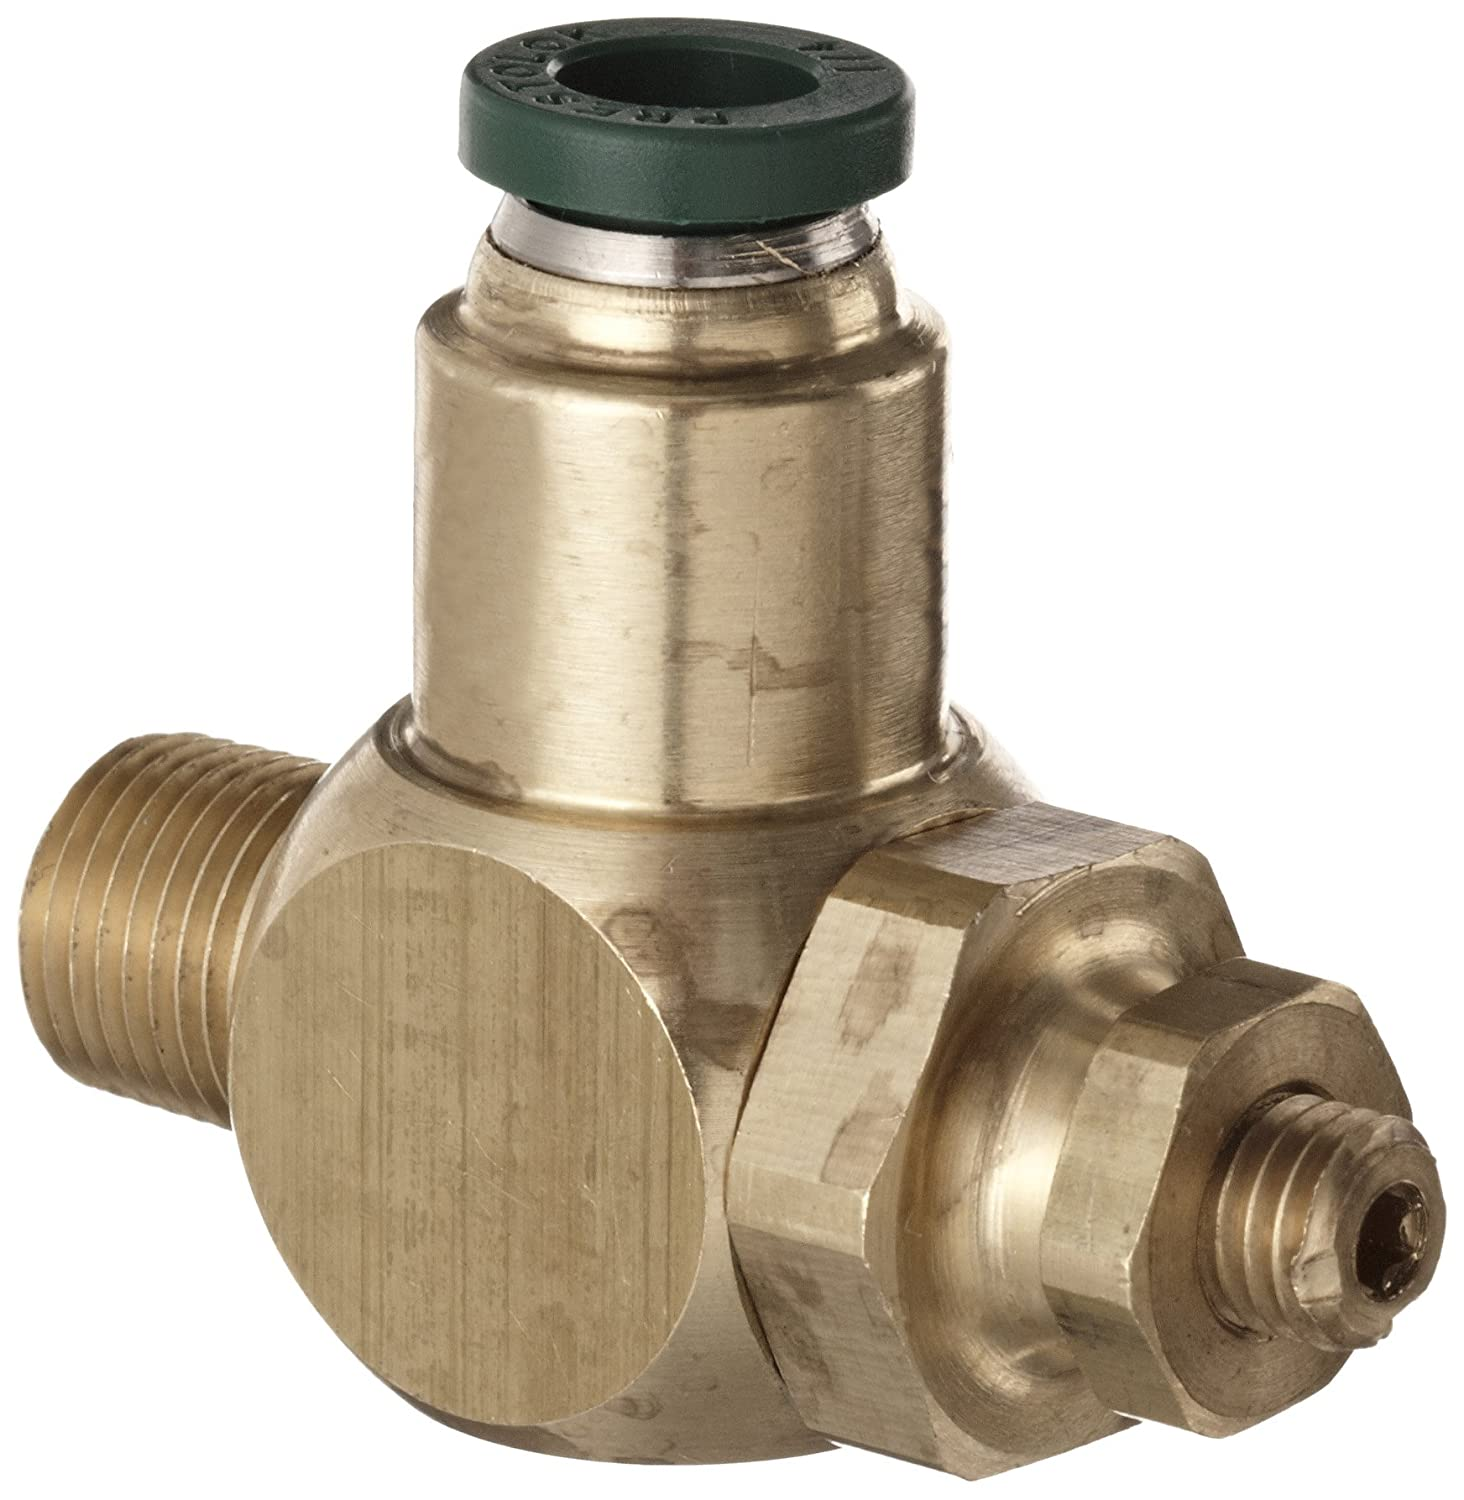 125 psi 1//8 NPT Male x 1//4 NPT Female Parker 032511225 3251 Series Brass Right Angle Flow Control Valve with Prestolok Fitting